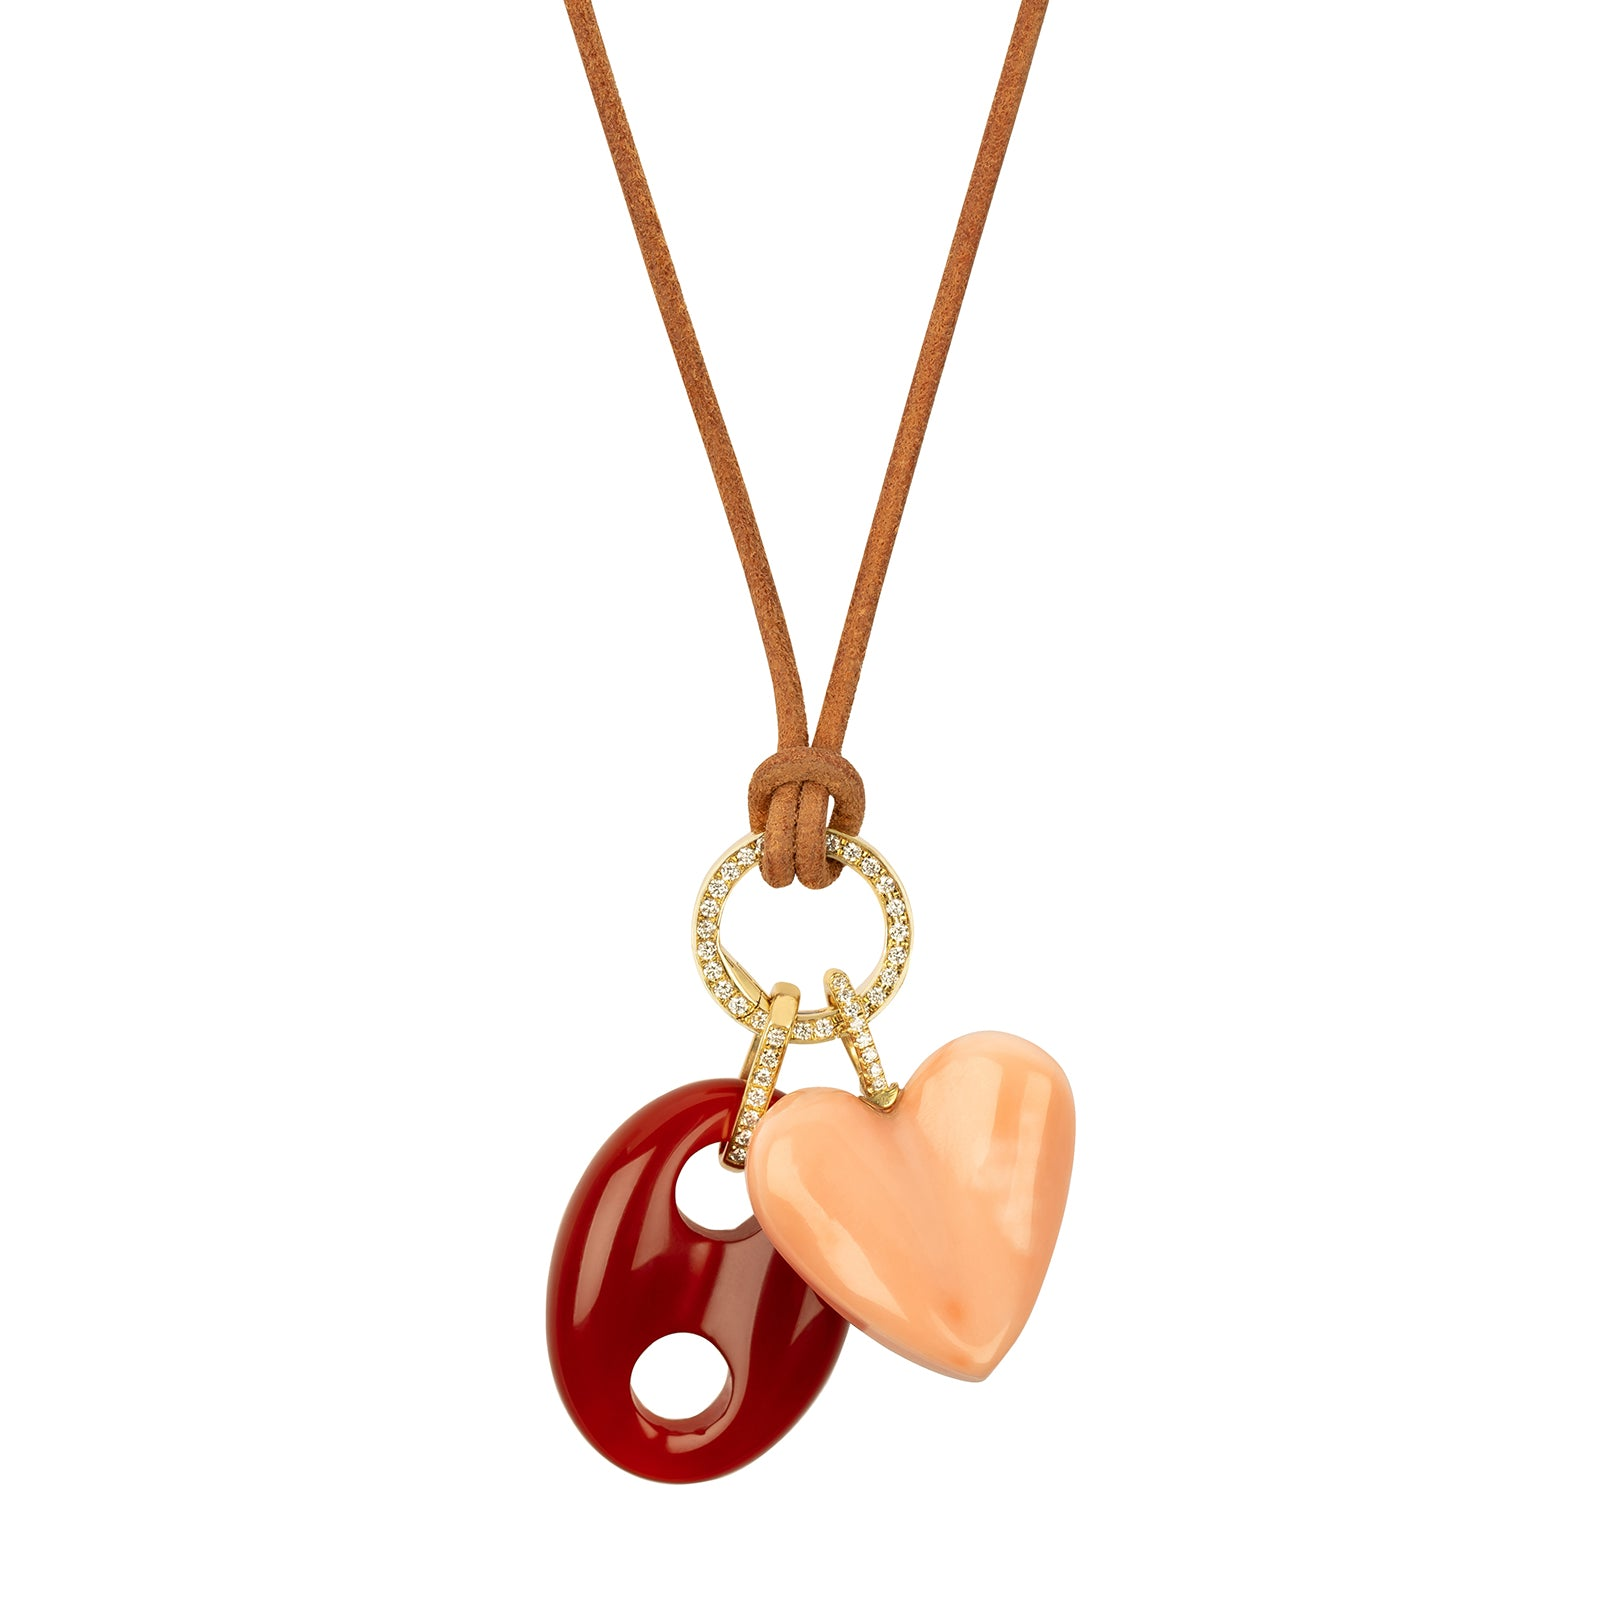 Jenna Blake Mariner Carnelian Link Pendant - Charms & Pendants - Broken English Jewelry